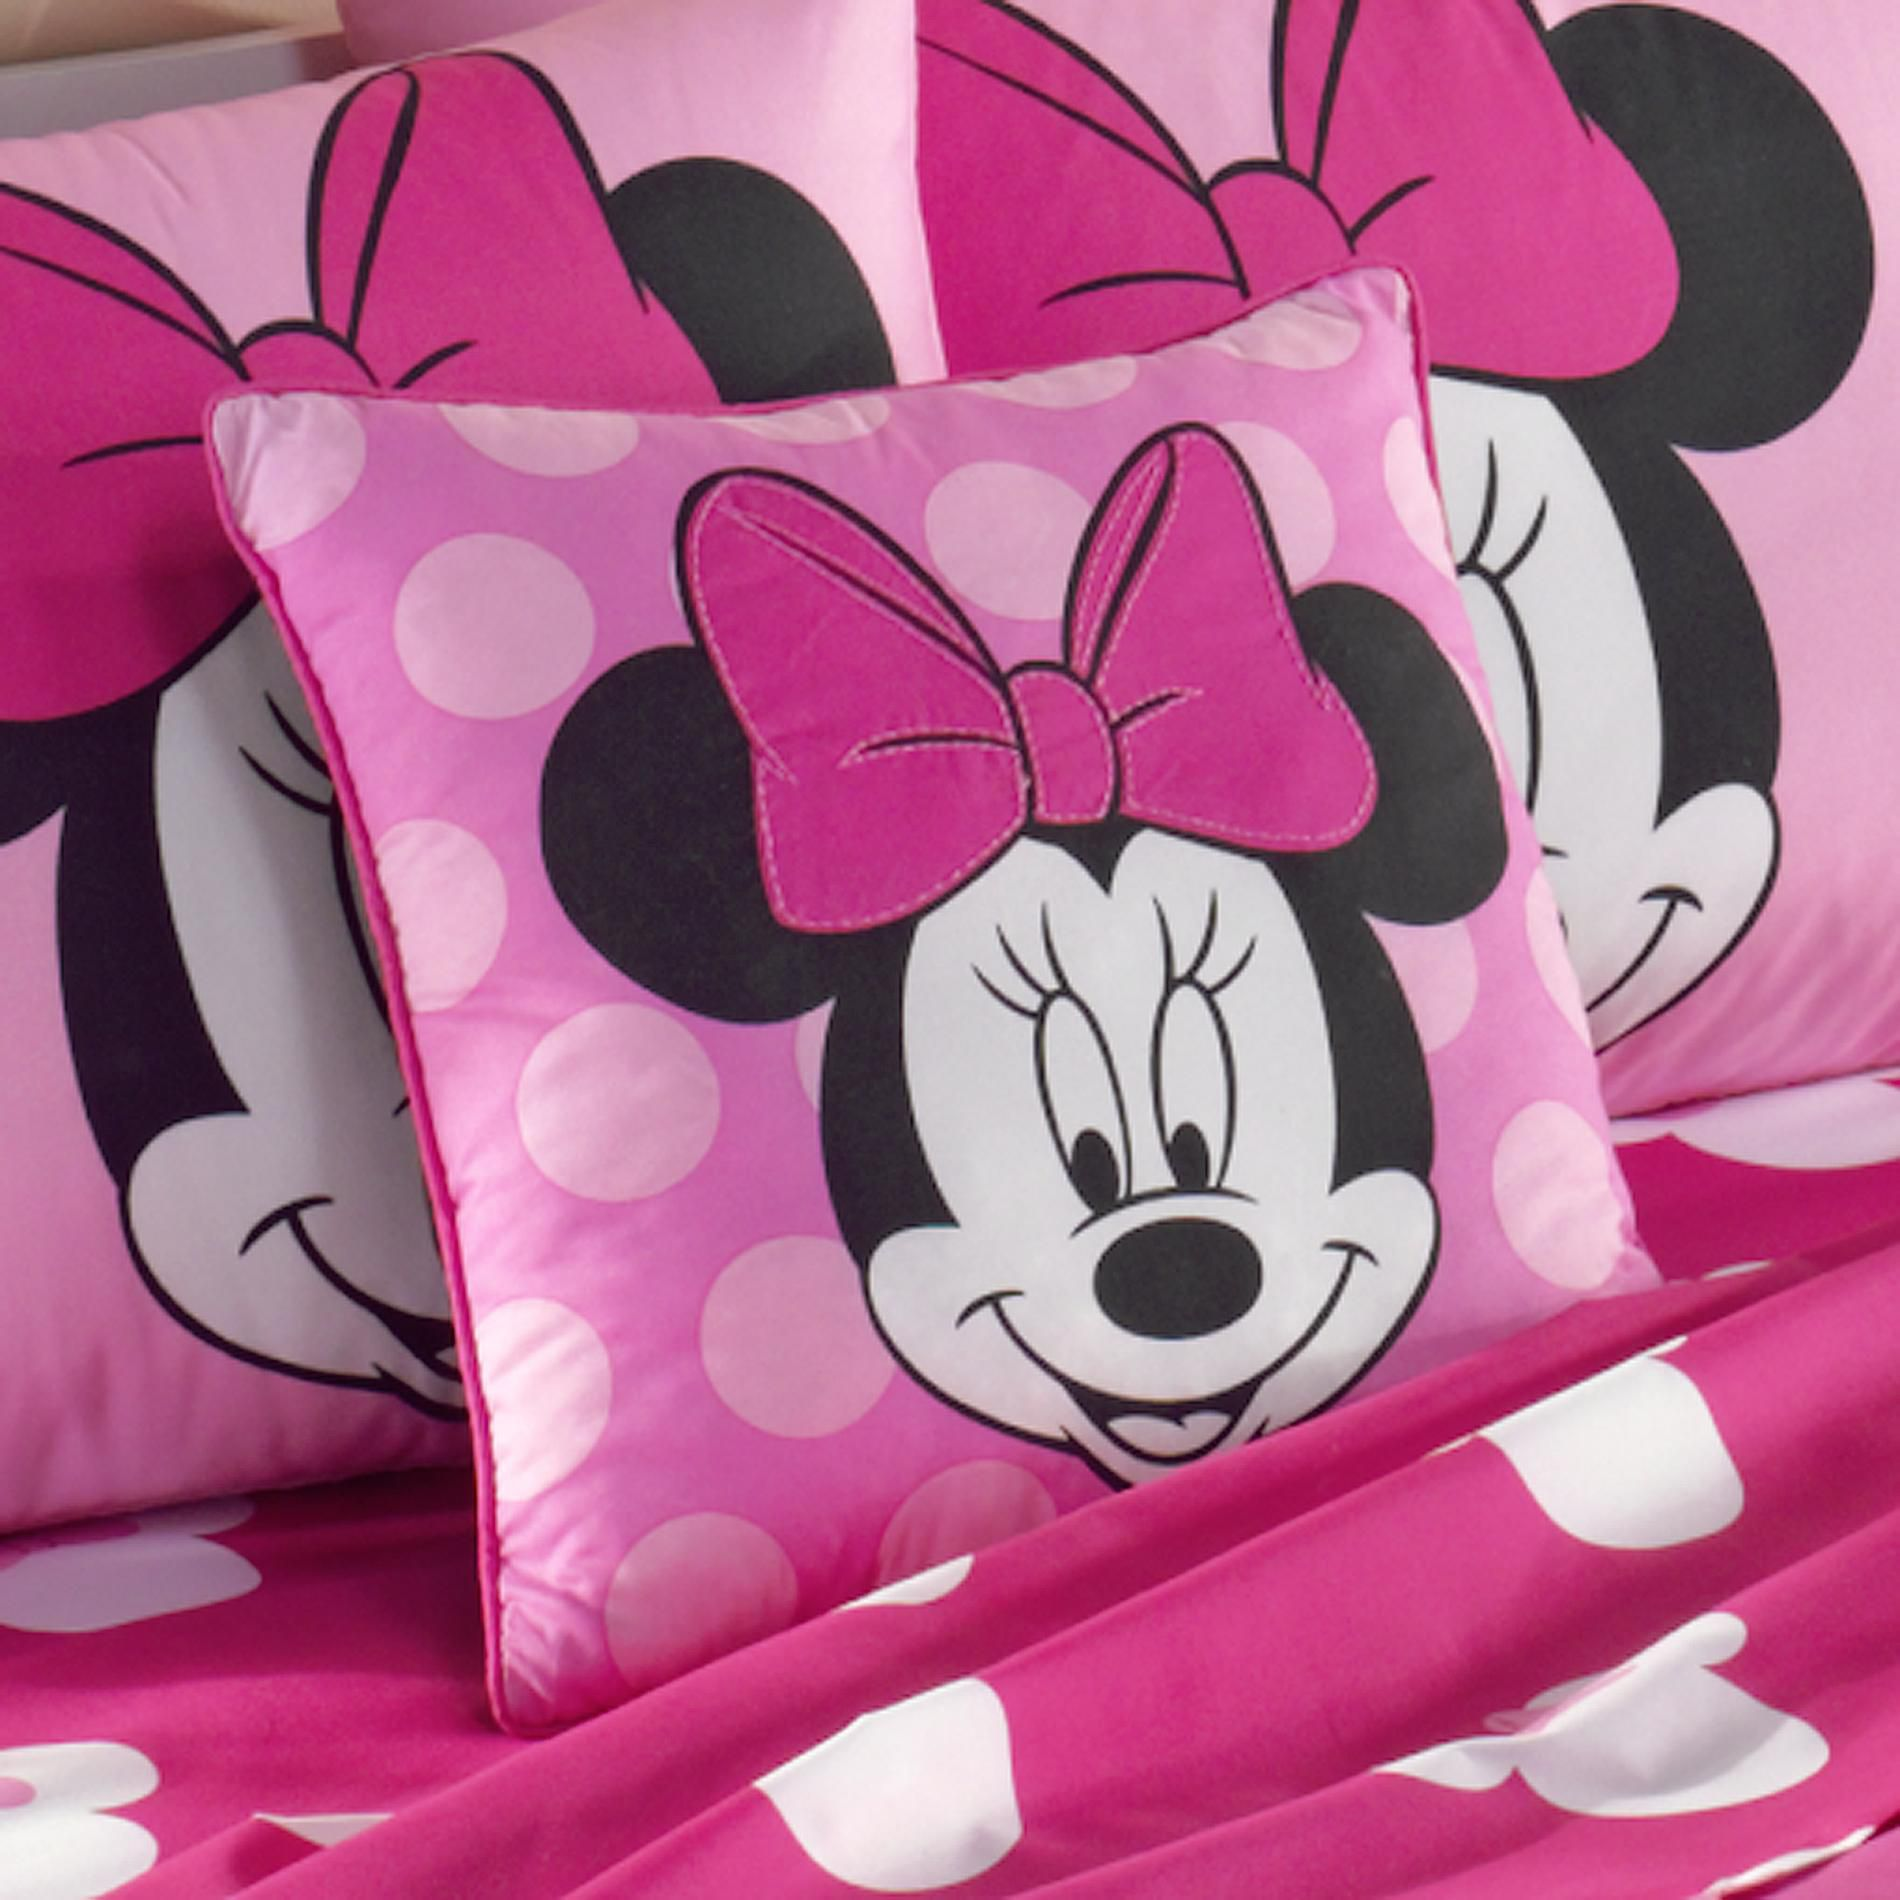 Minnie Mouse Decorative Pillow - 16 x 16